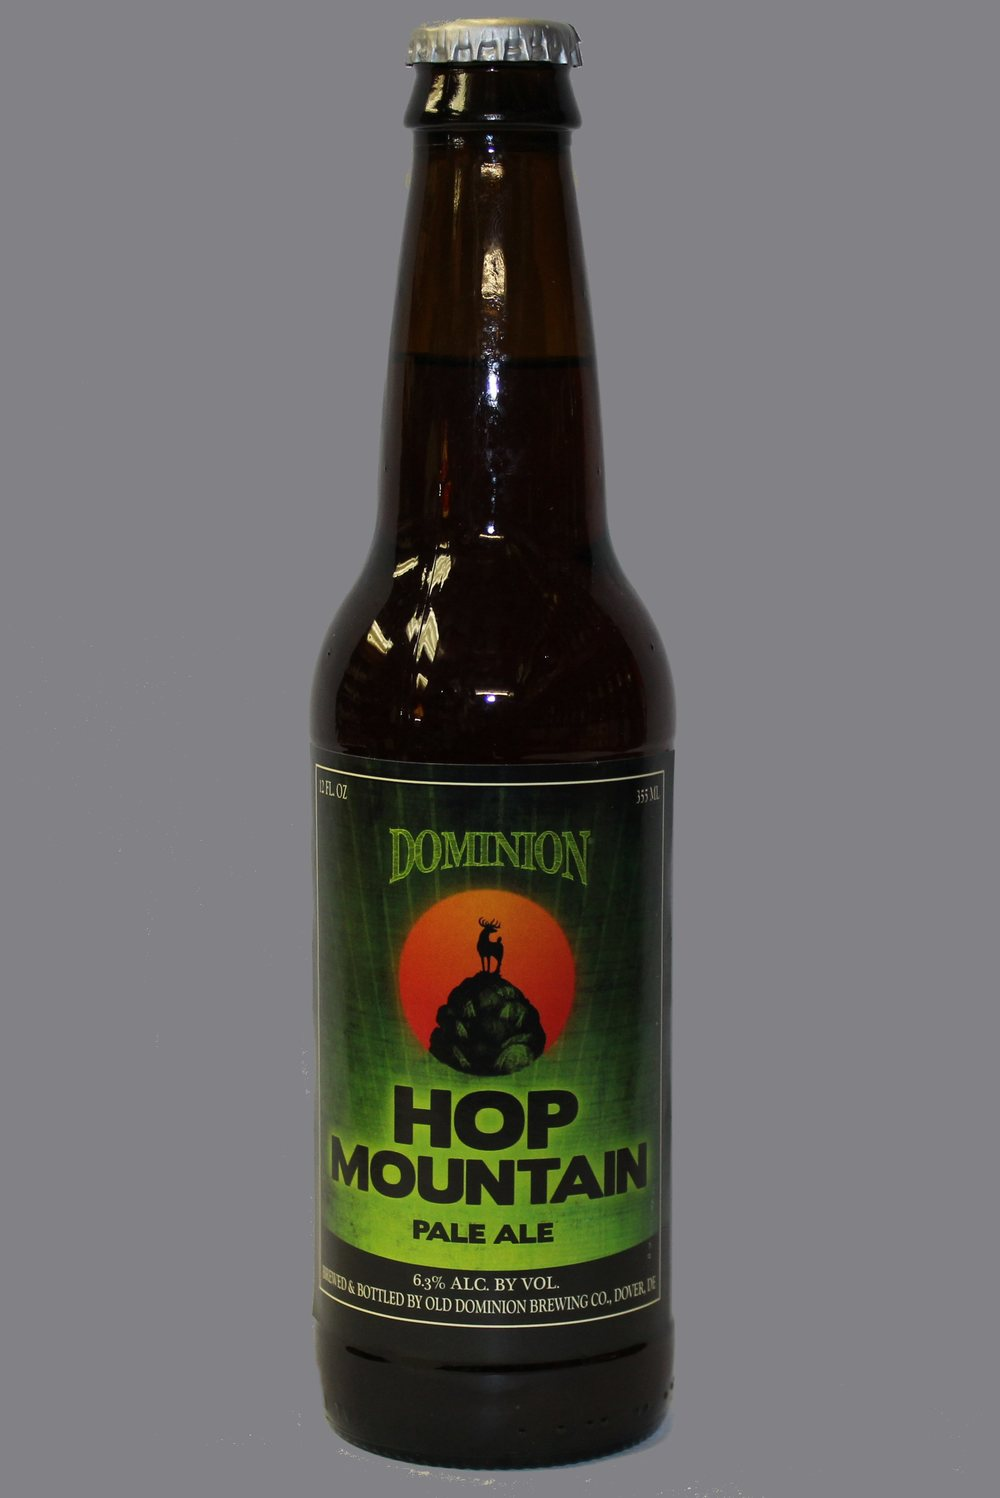 DOMINION-Hop Mountain.jpg